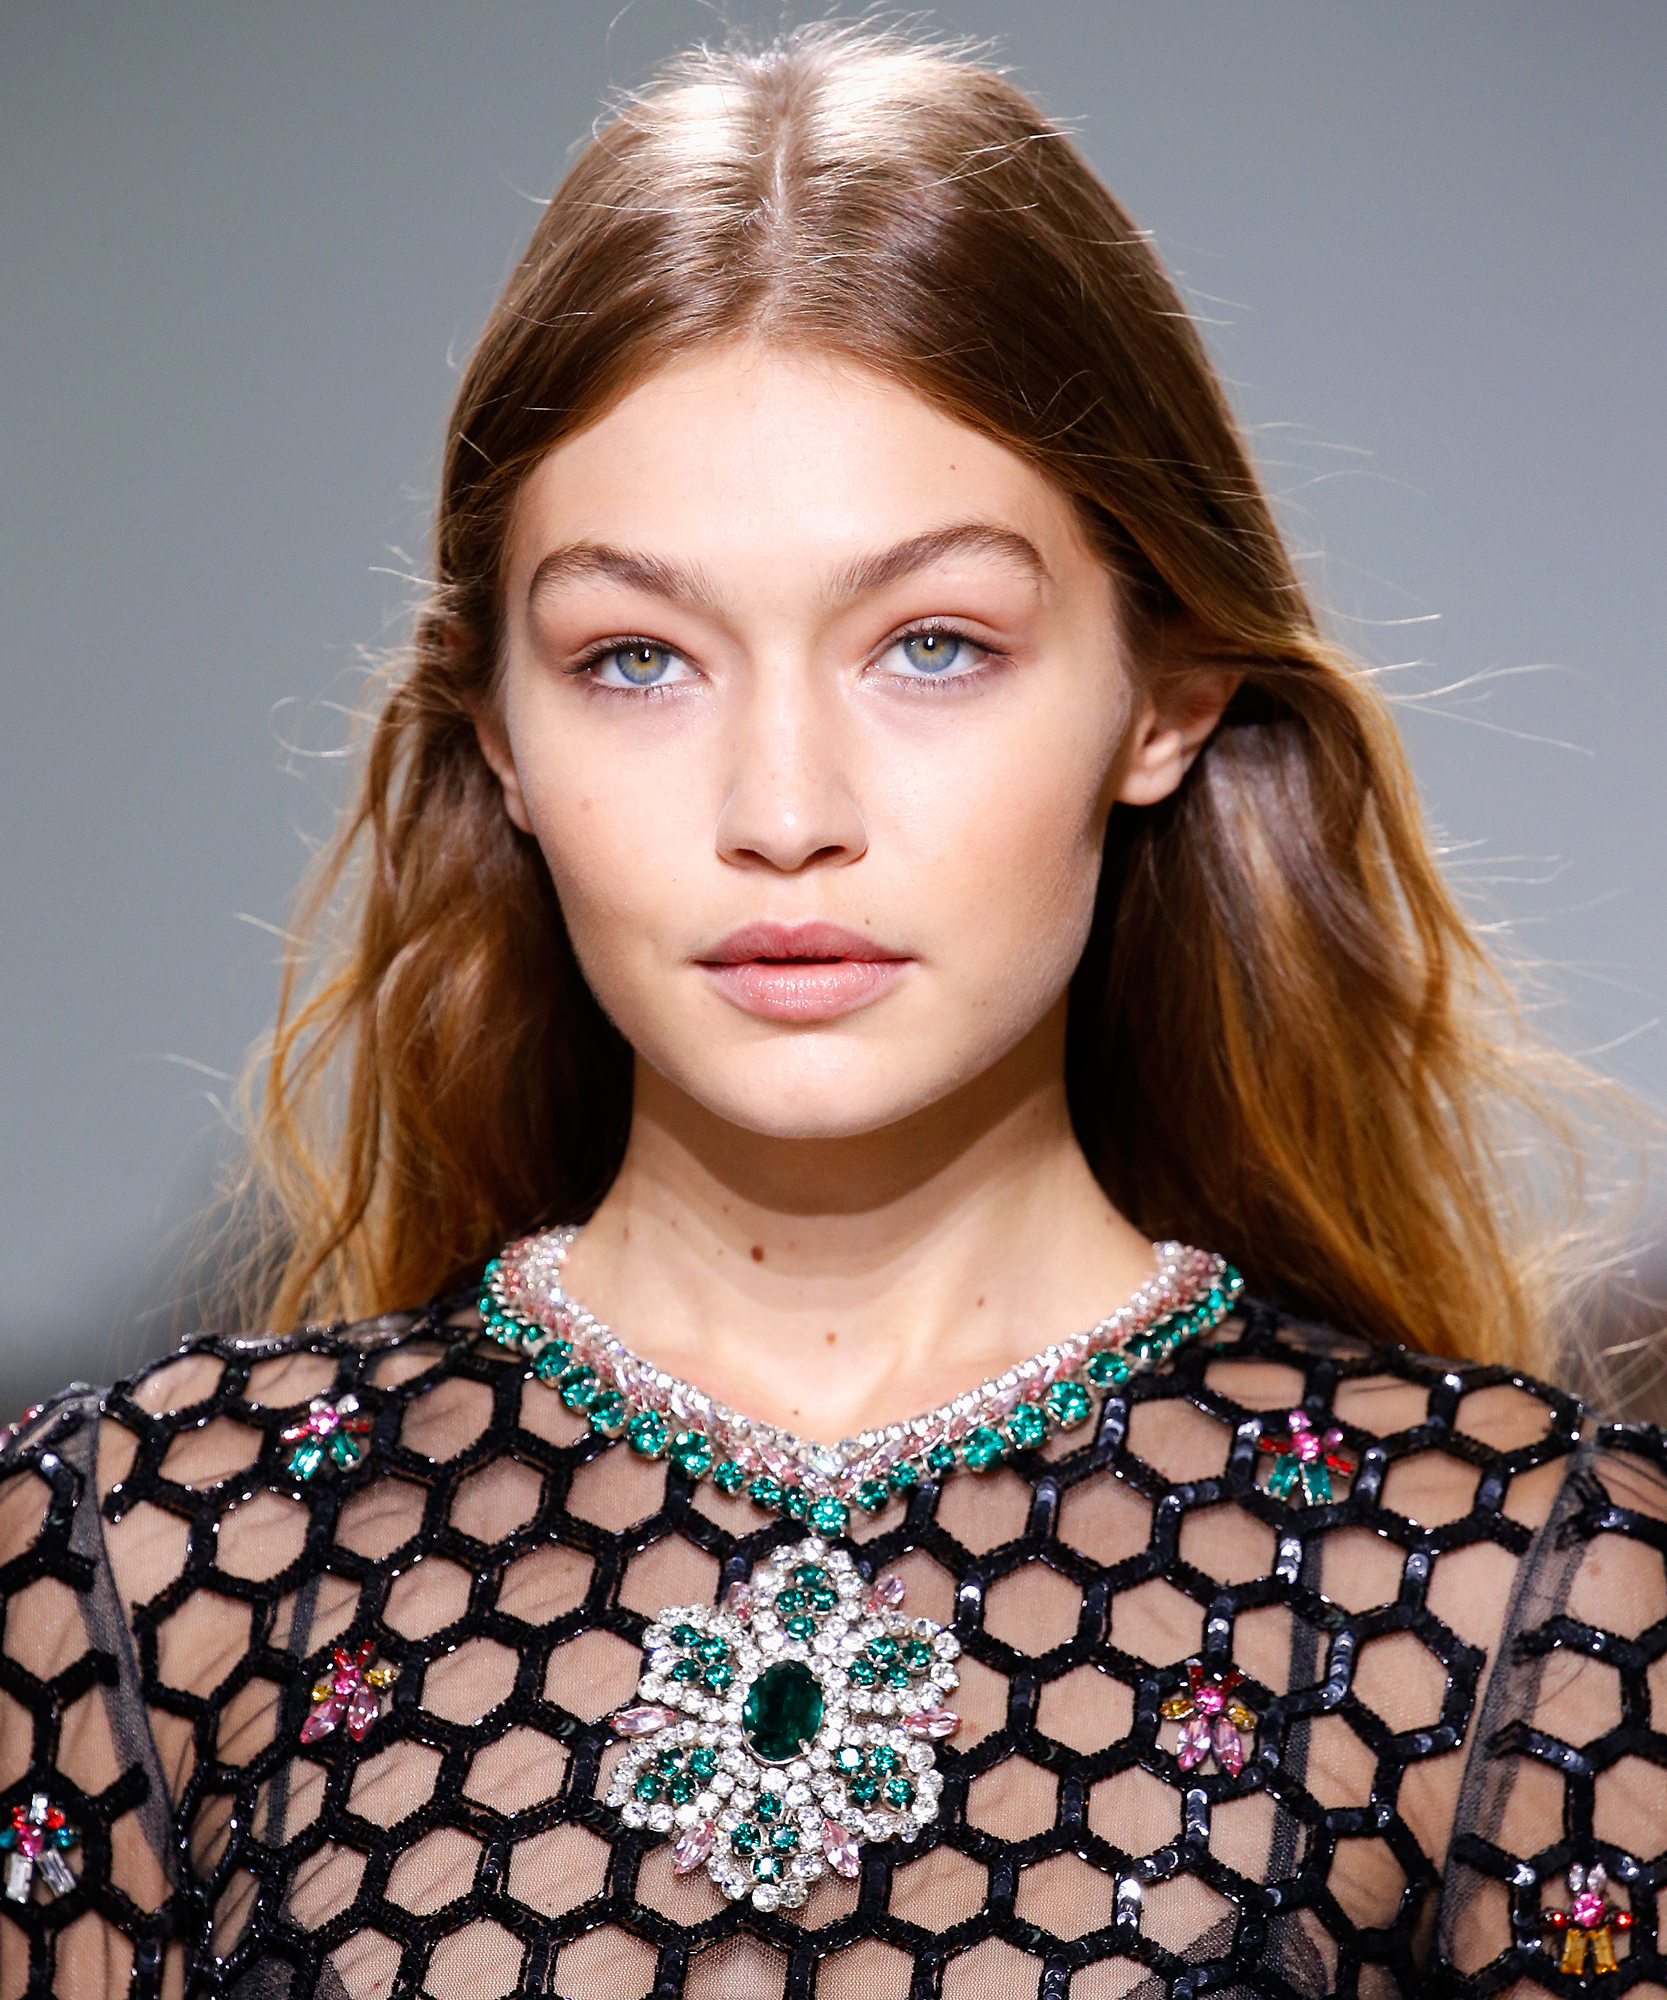 Gigi Hadid Wears Rhinestone Eye Makeup, We All Wear Rhinestone Eye Makeup